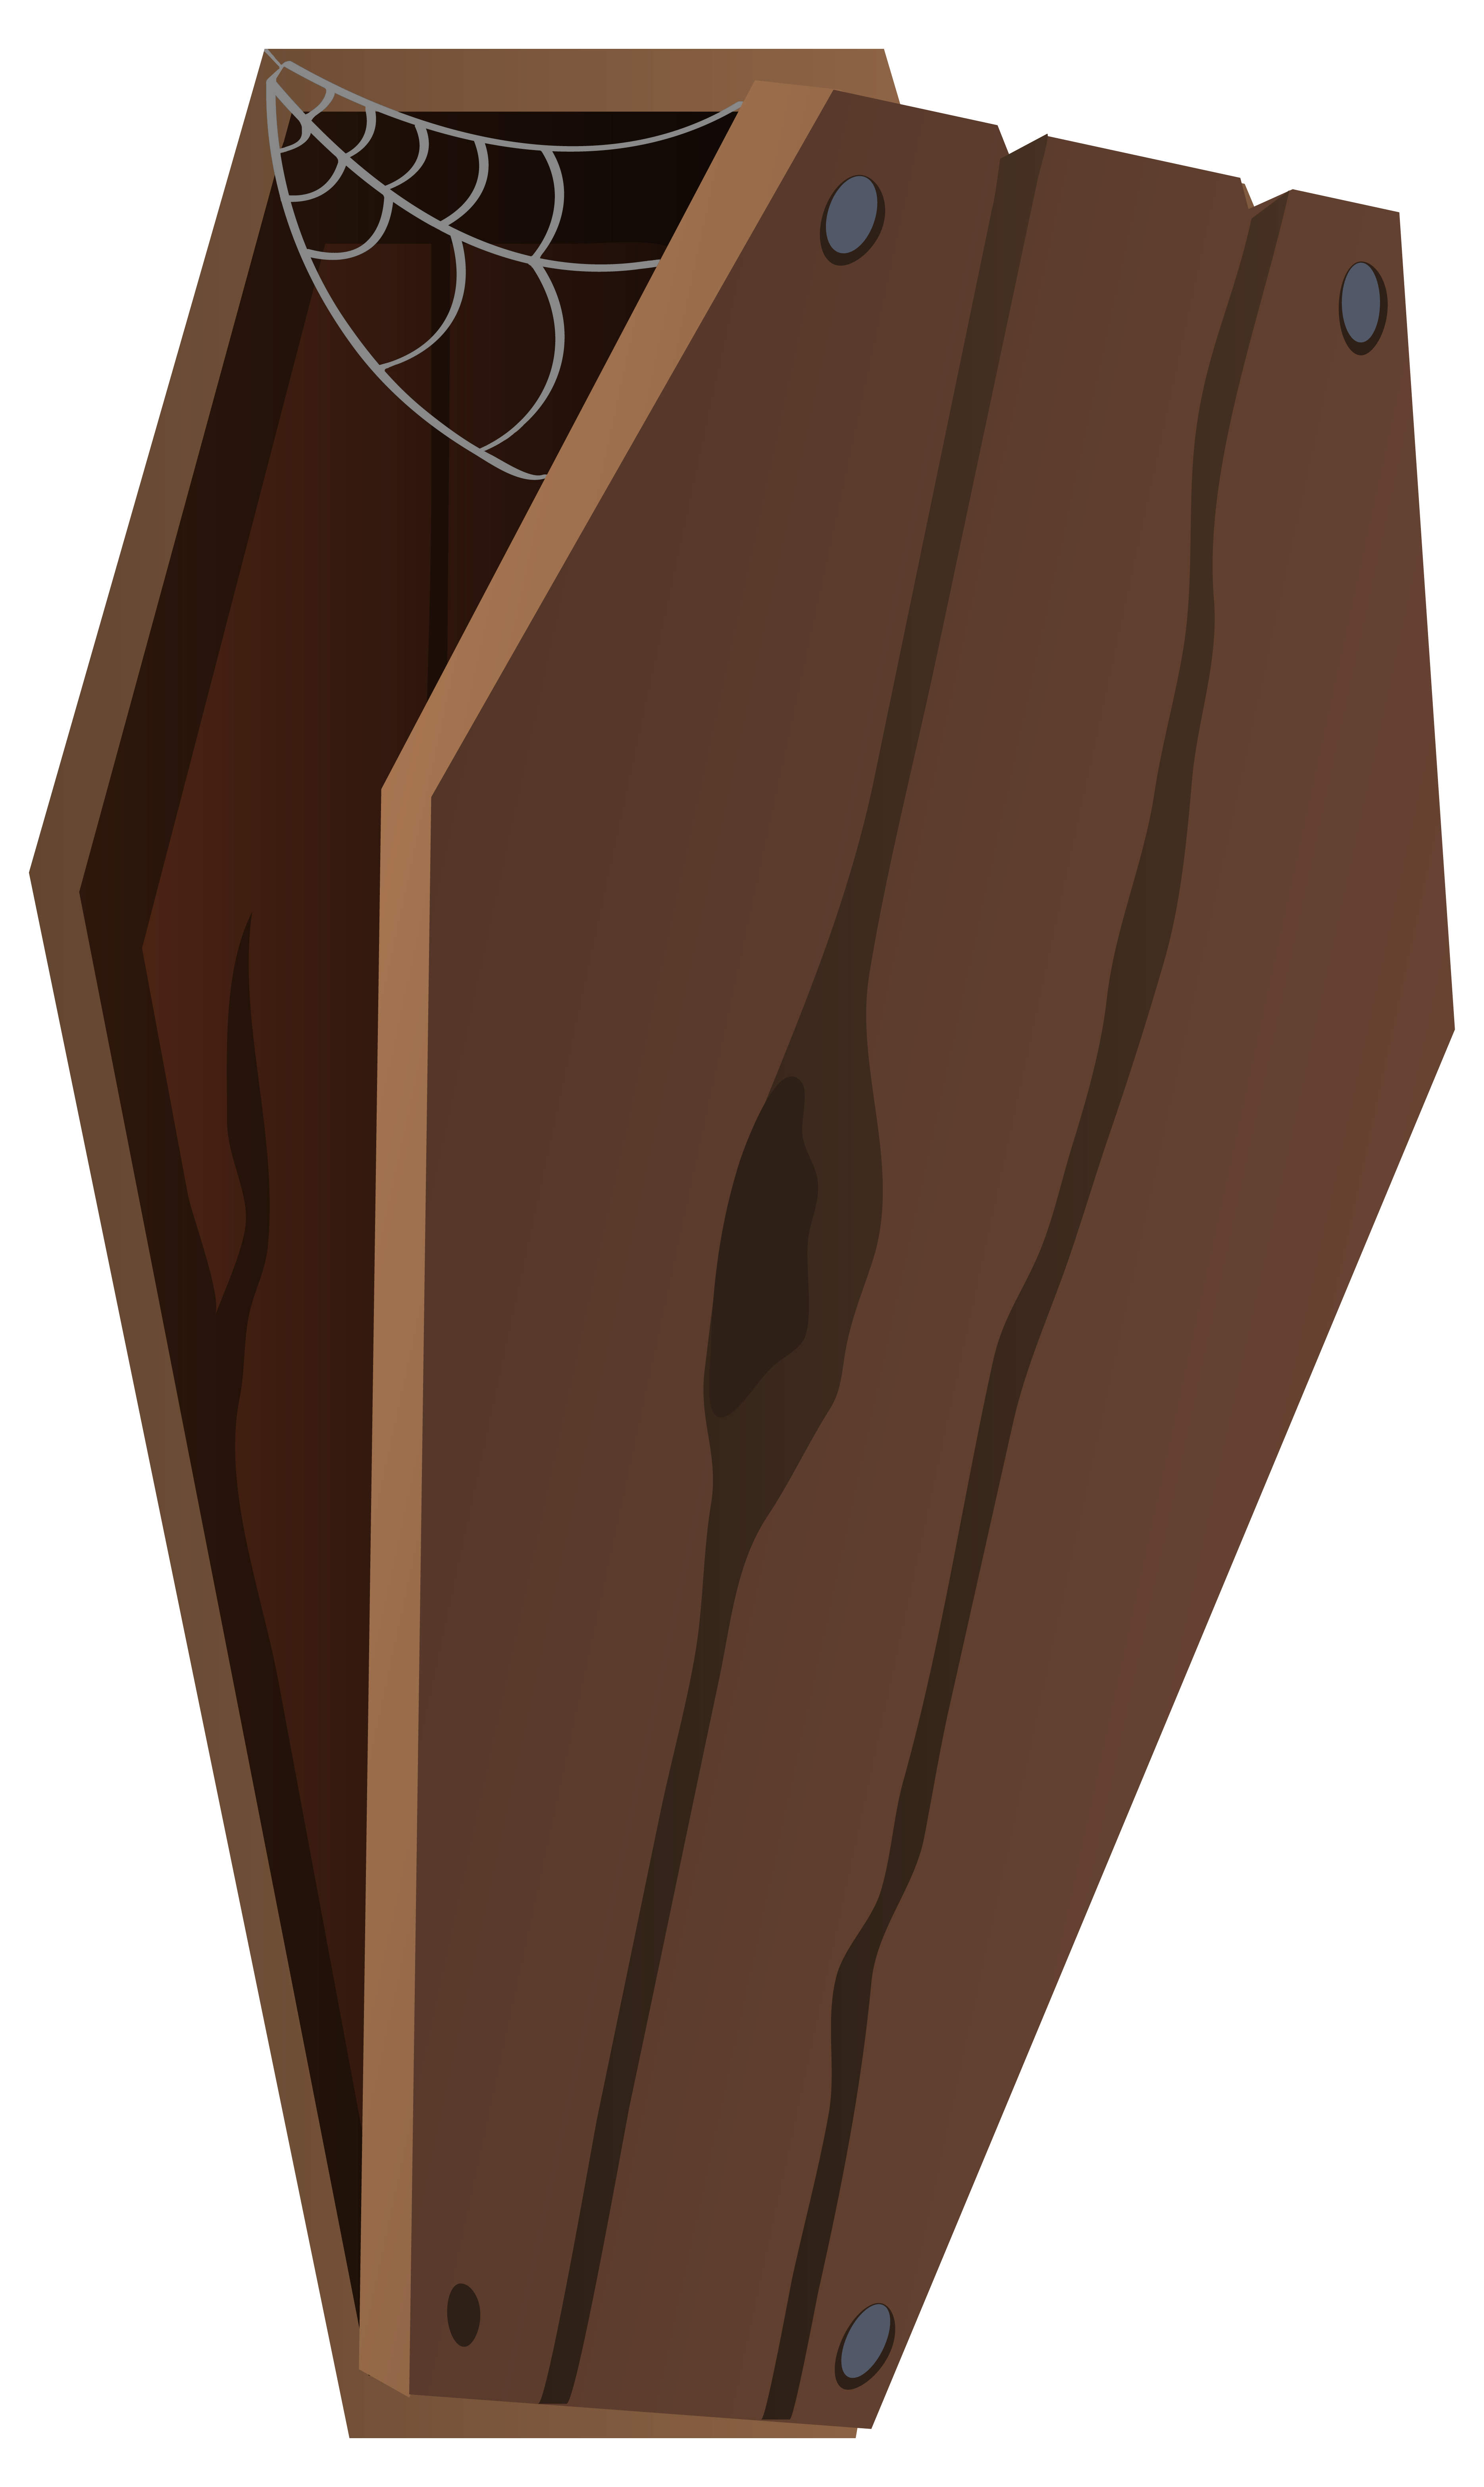 Cartoon coffin png. Vertical clipart image gallery